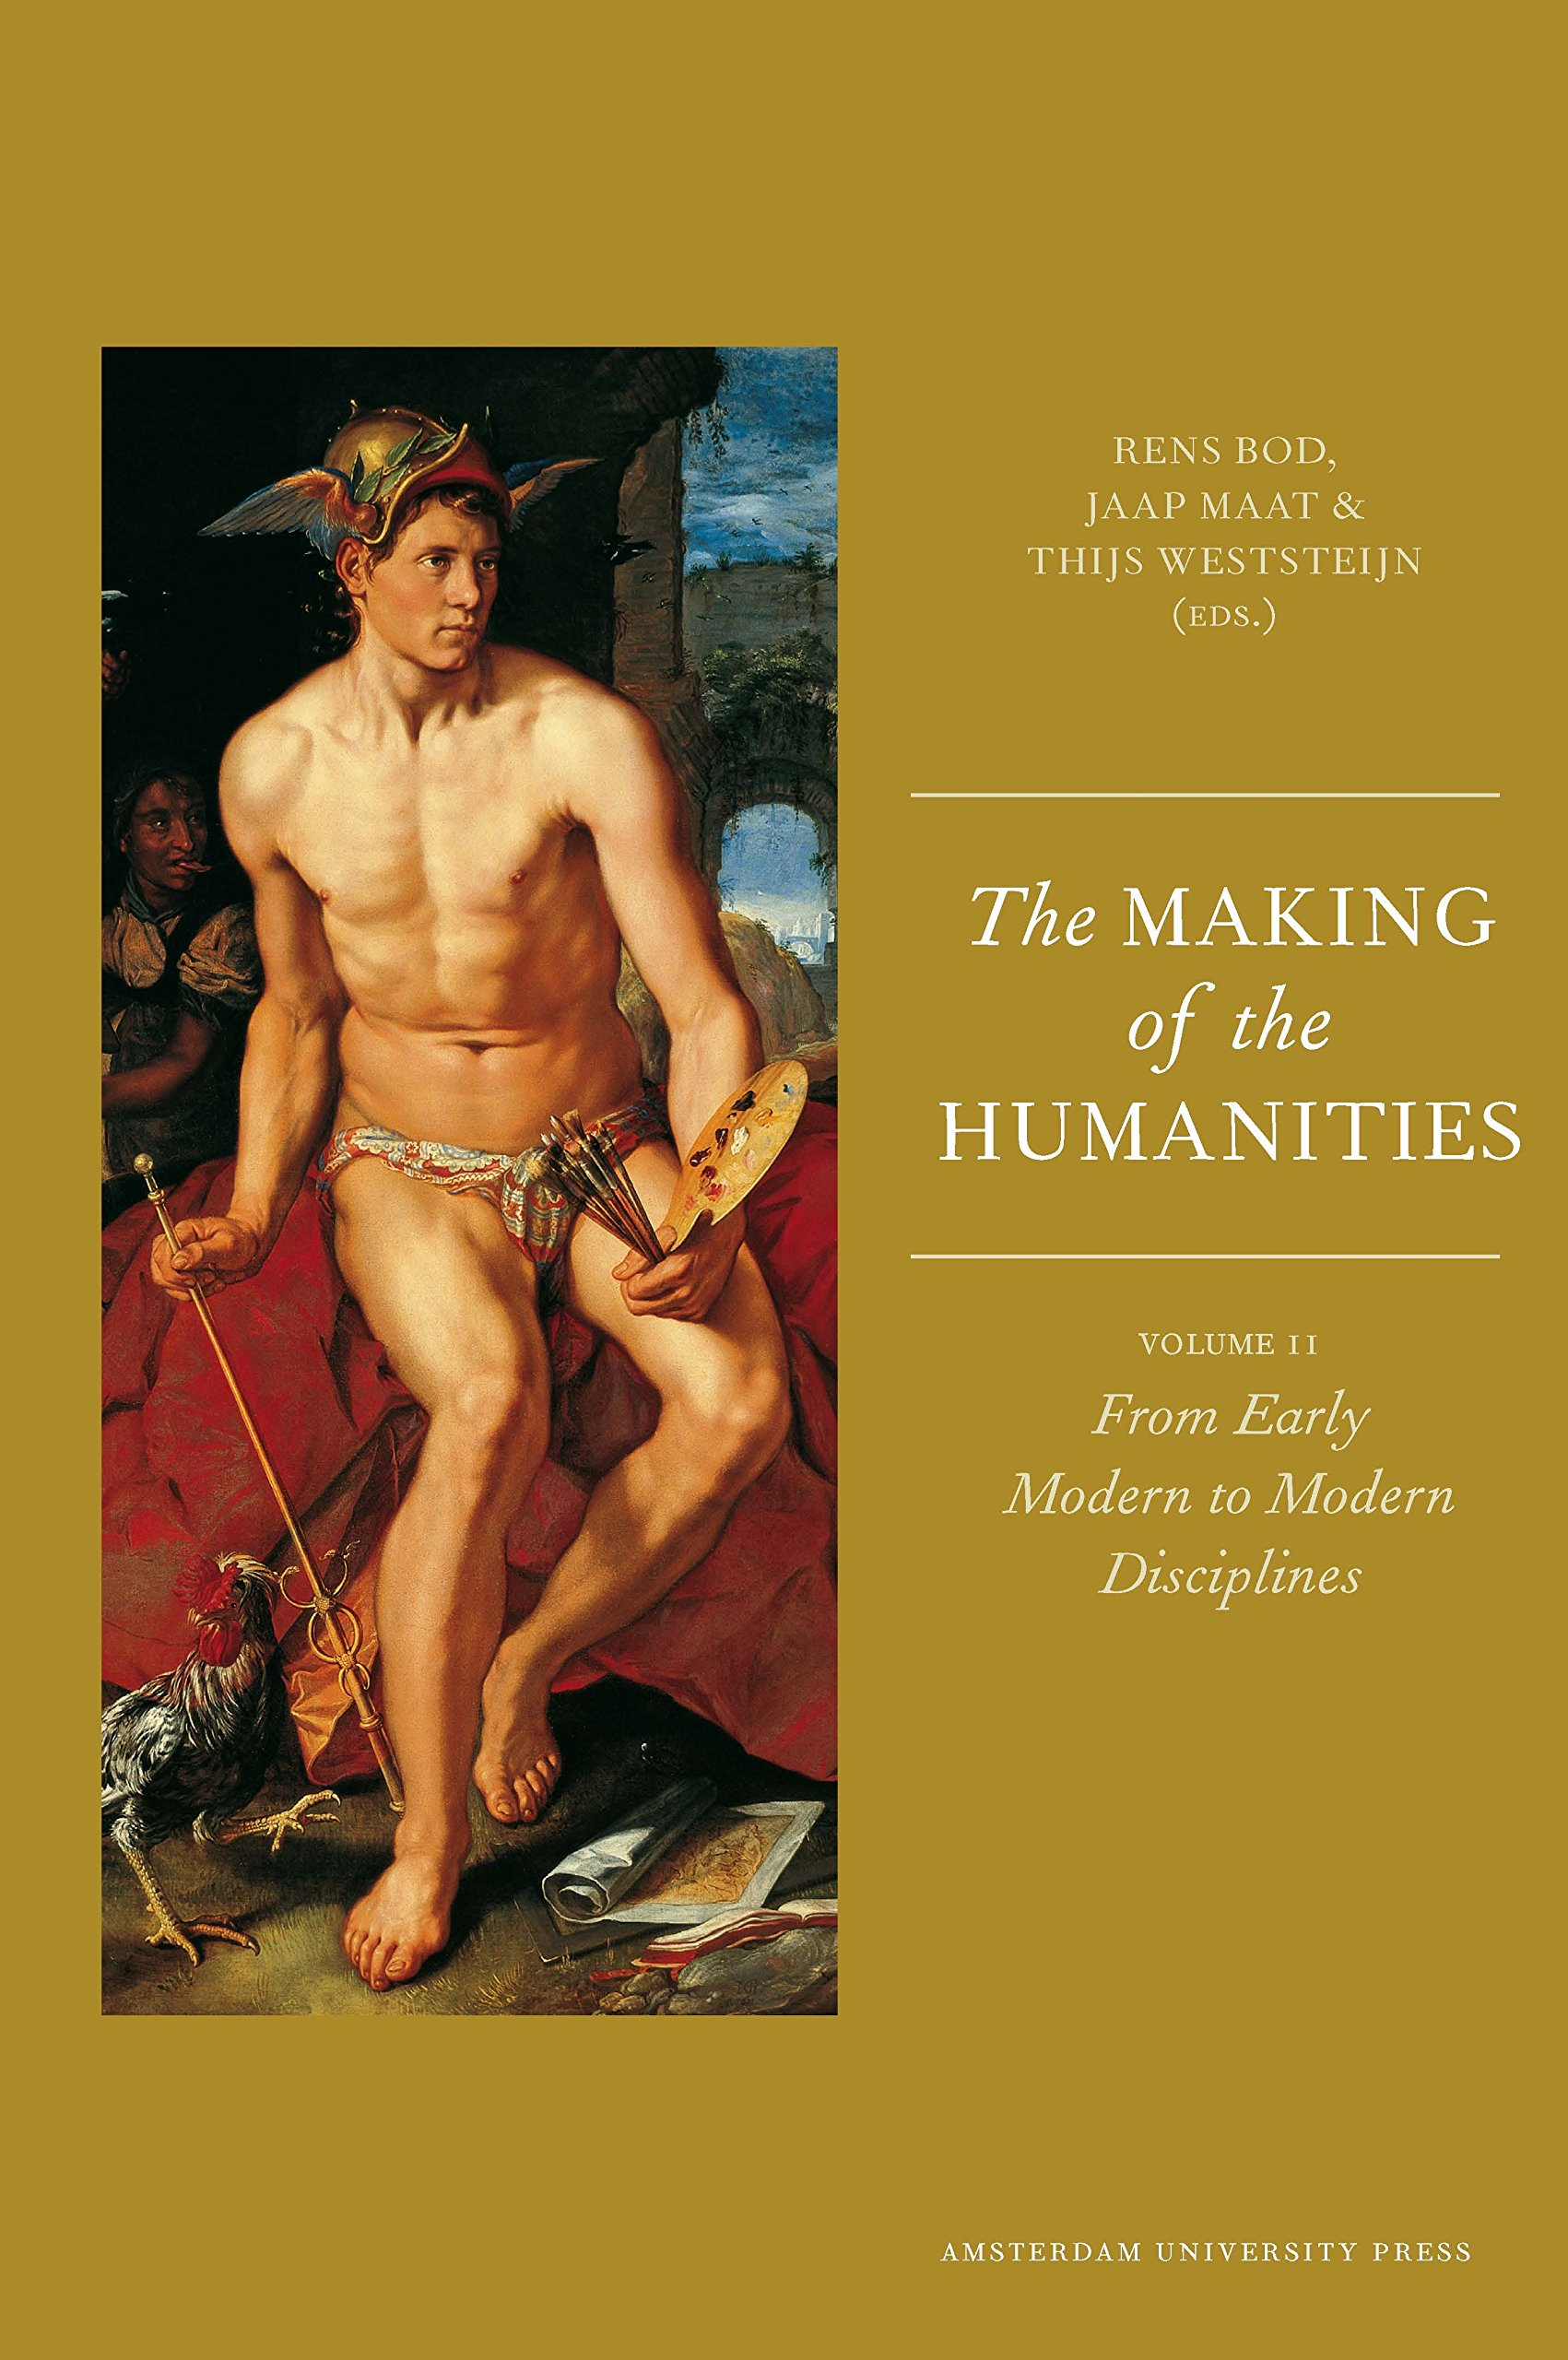 Download The Making of the Humanities: Volume II - From Early Modern to Modern Disciplines pdf epub